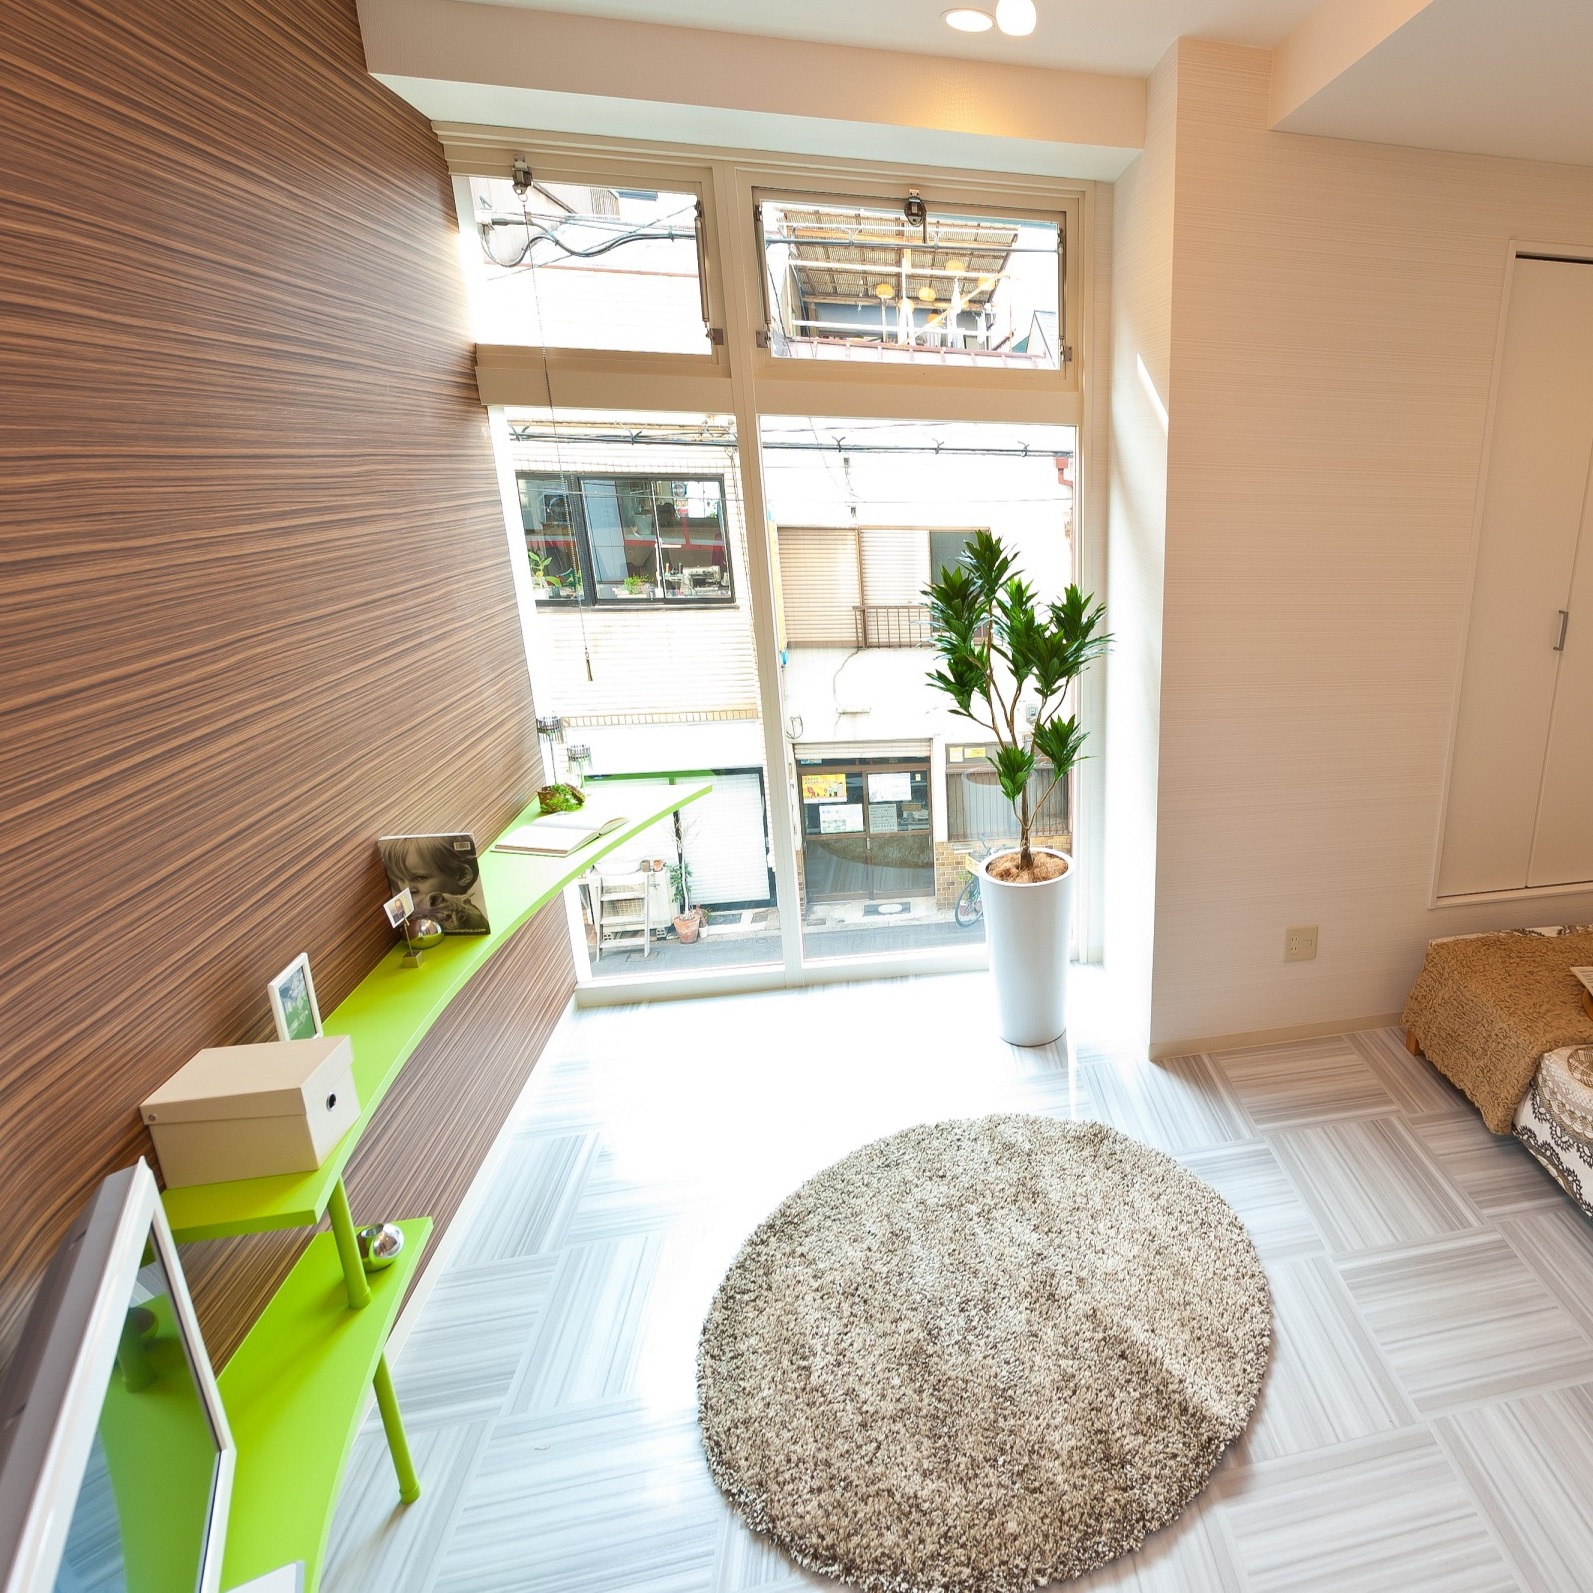 Weird Apartment Layout Ac modations Floor plan mistakes and